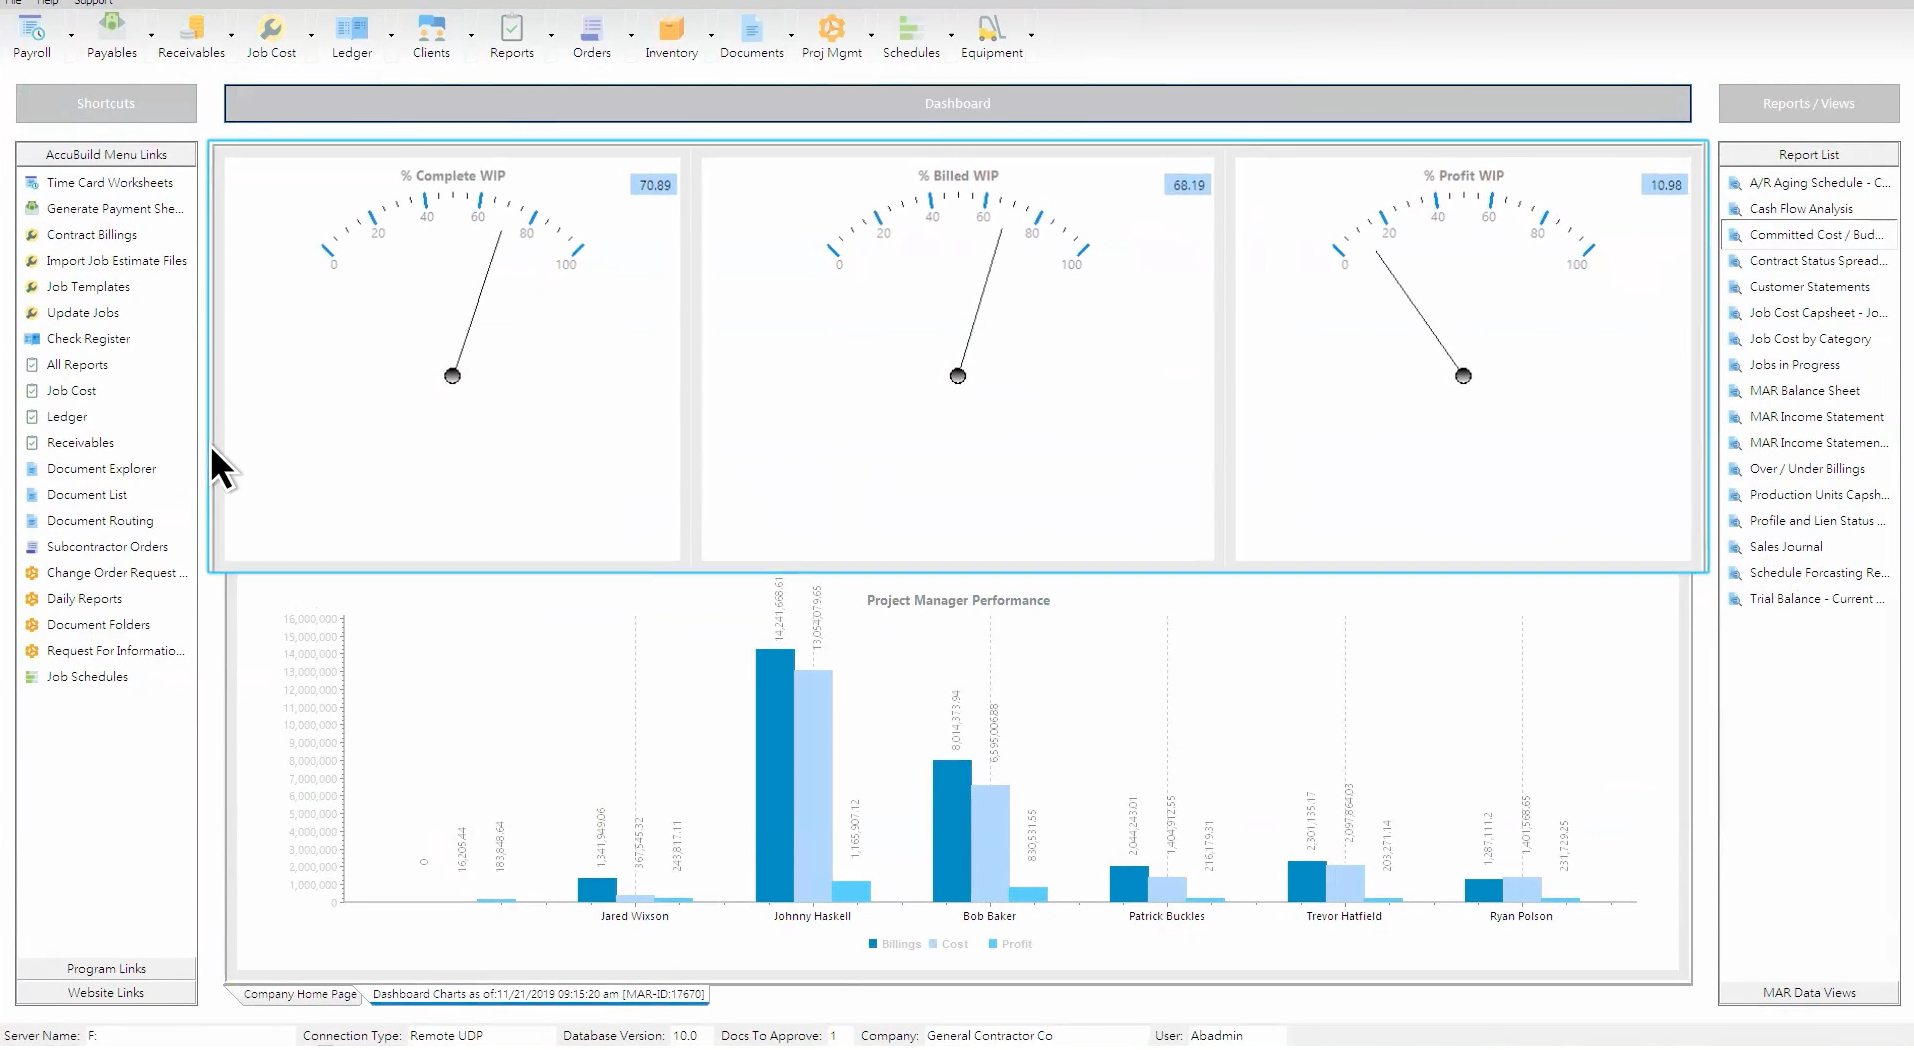 Screenshot of AccuBuild's business intelligence dashboard